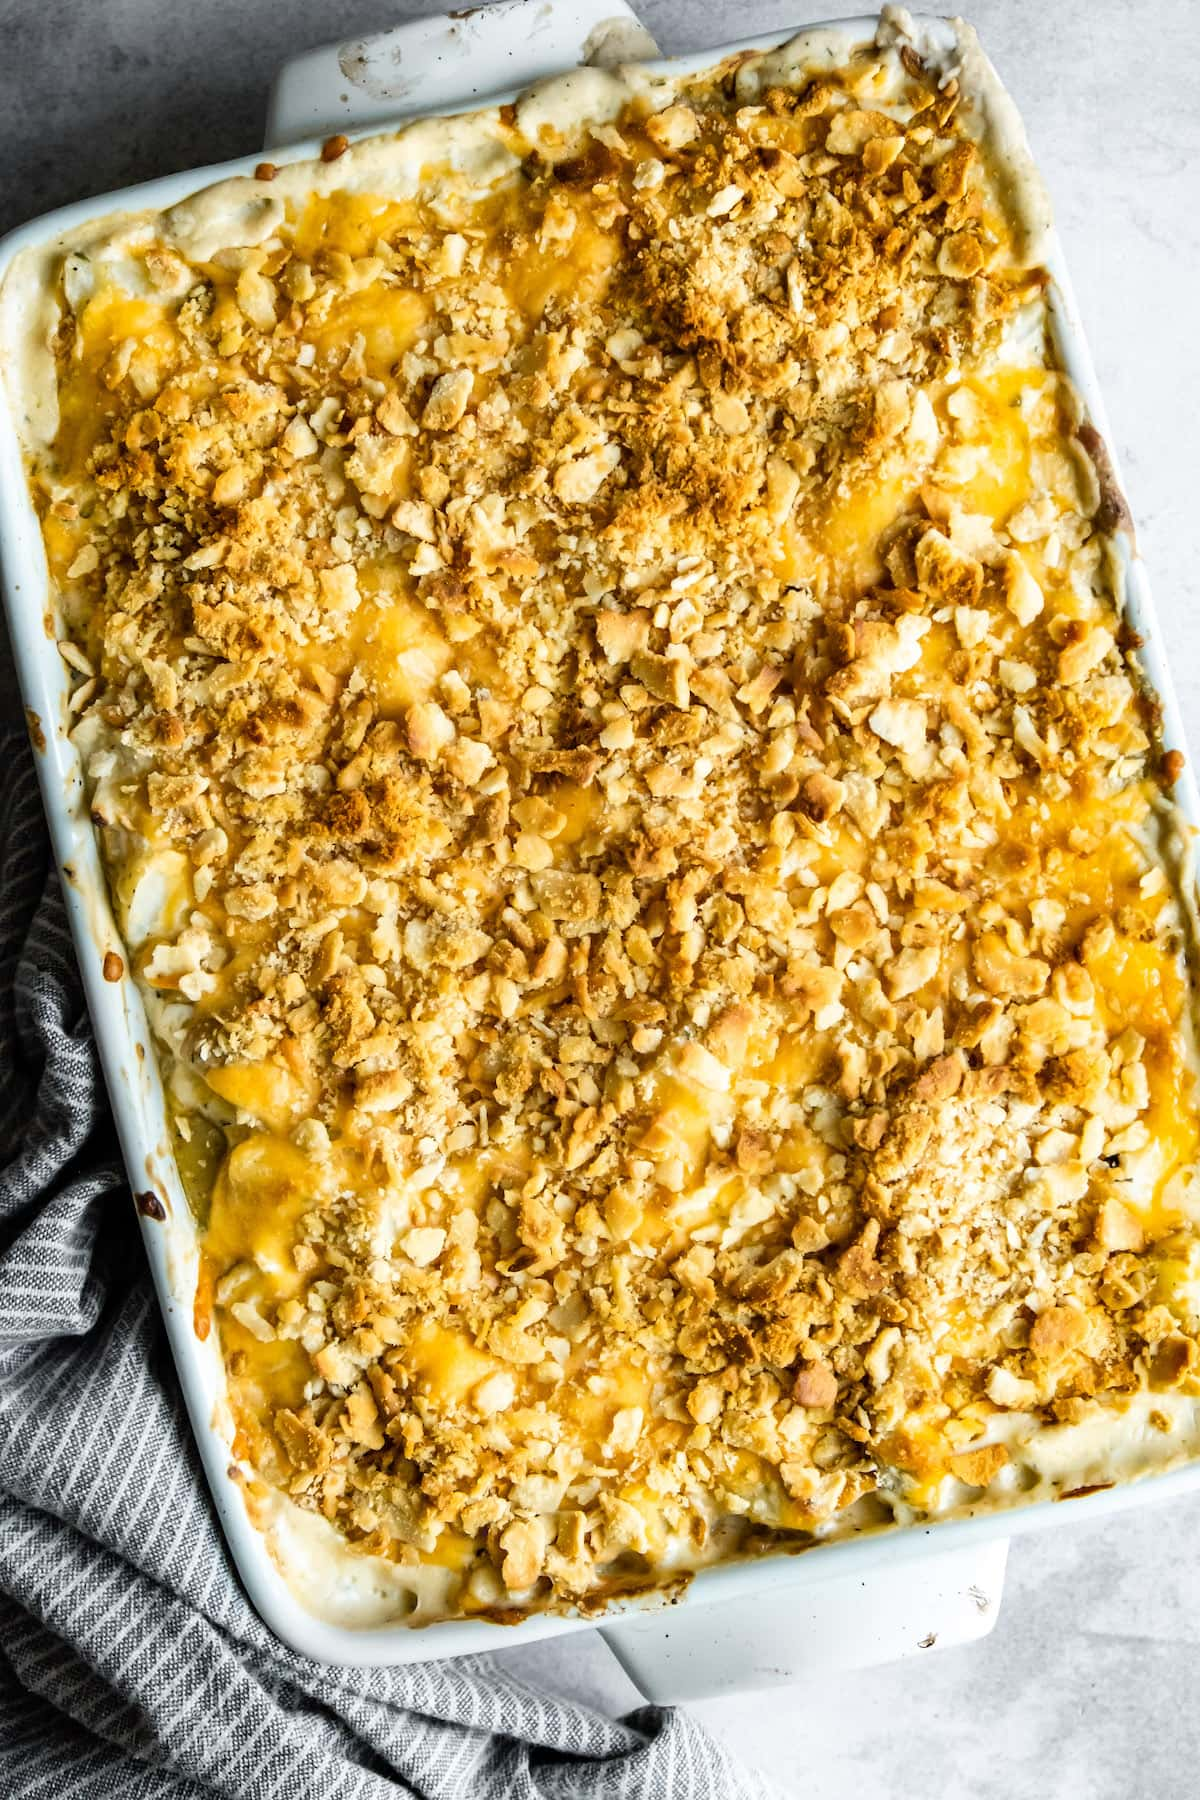 Baked hashbrown casserole in a pan.